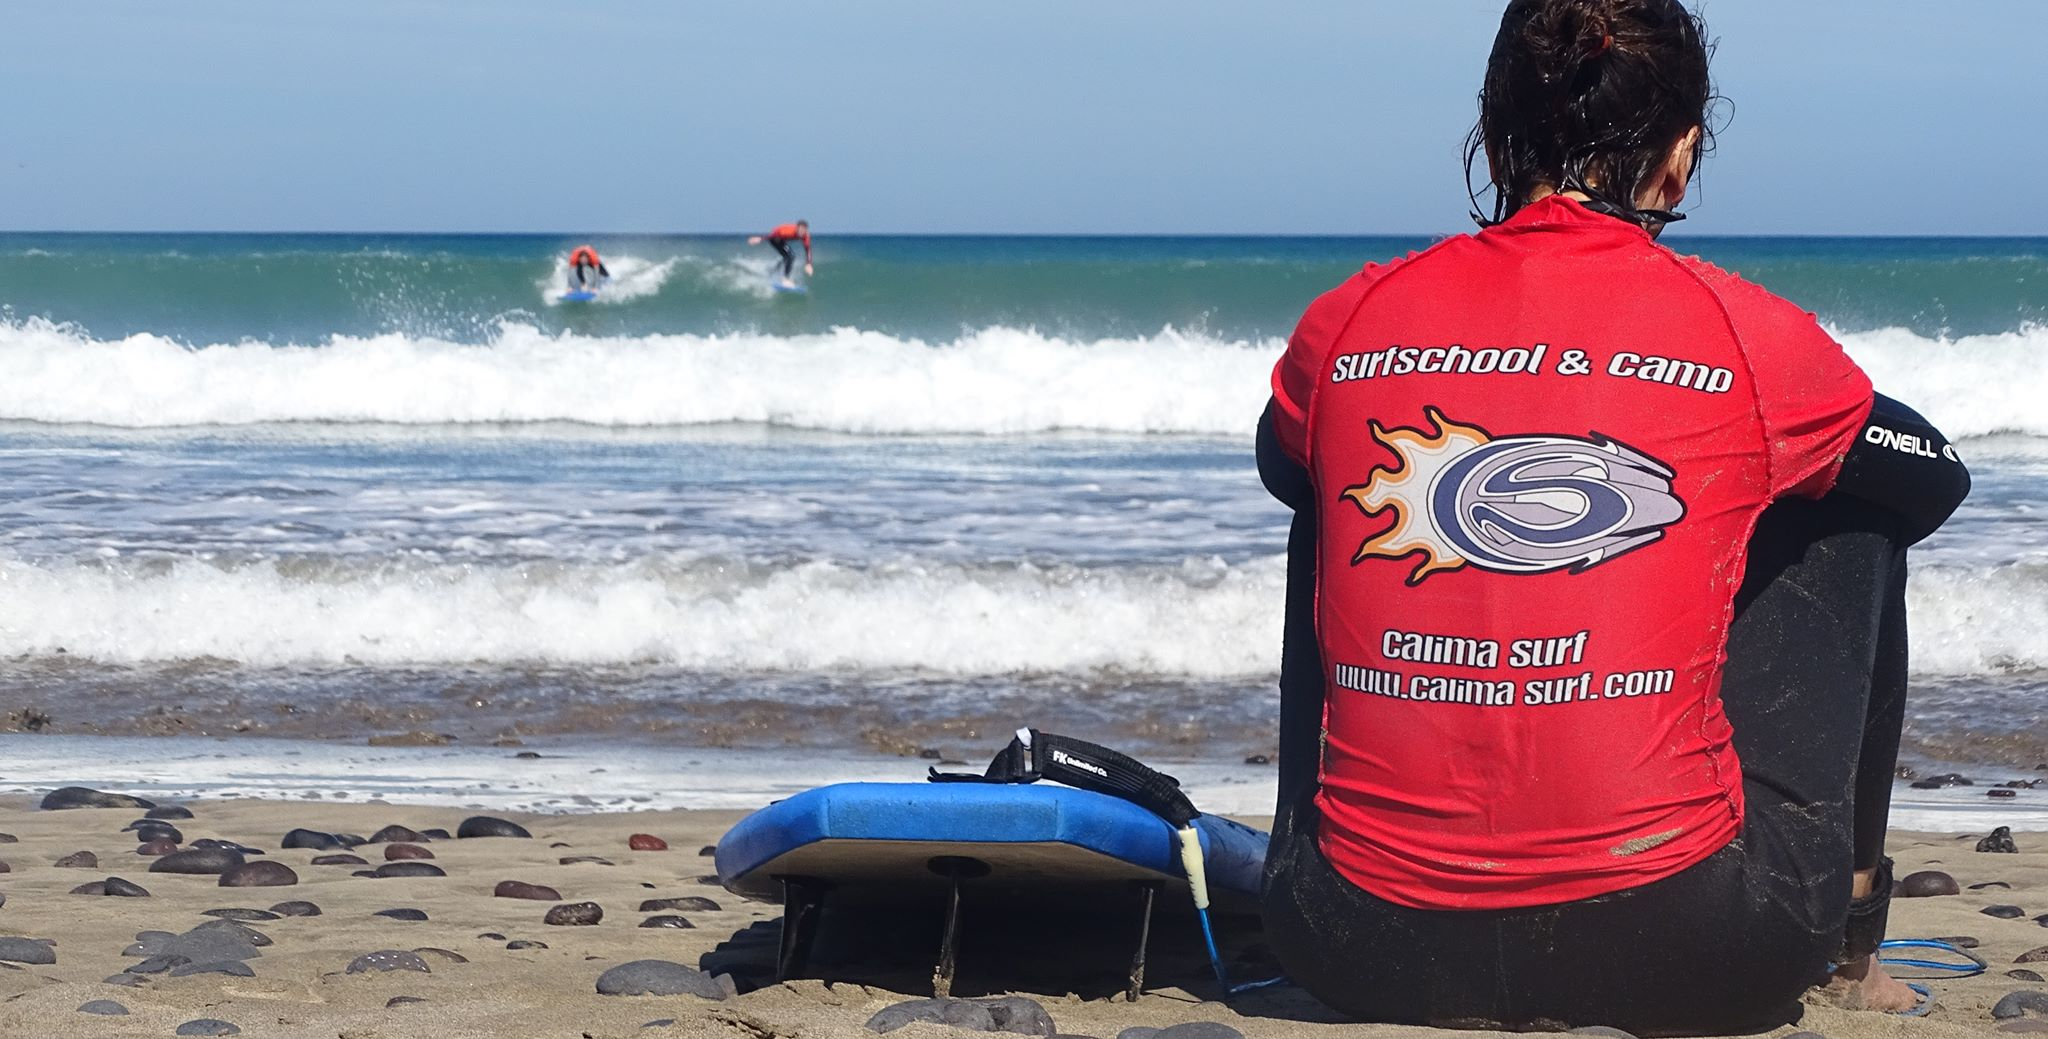 Spanish surfing holidays 10 best surf camps in Spain Image courtesy of Calima Surf School in Lanzarote